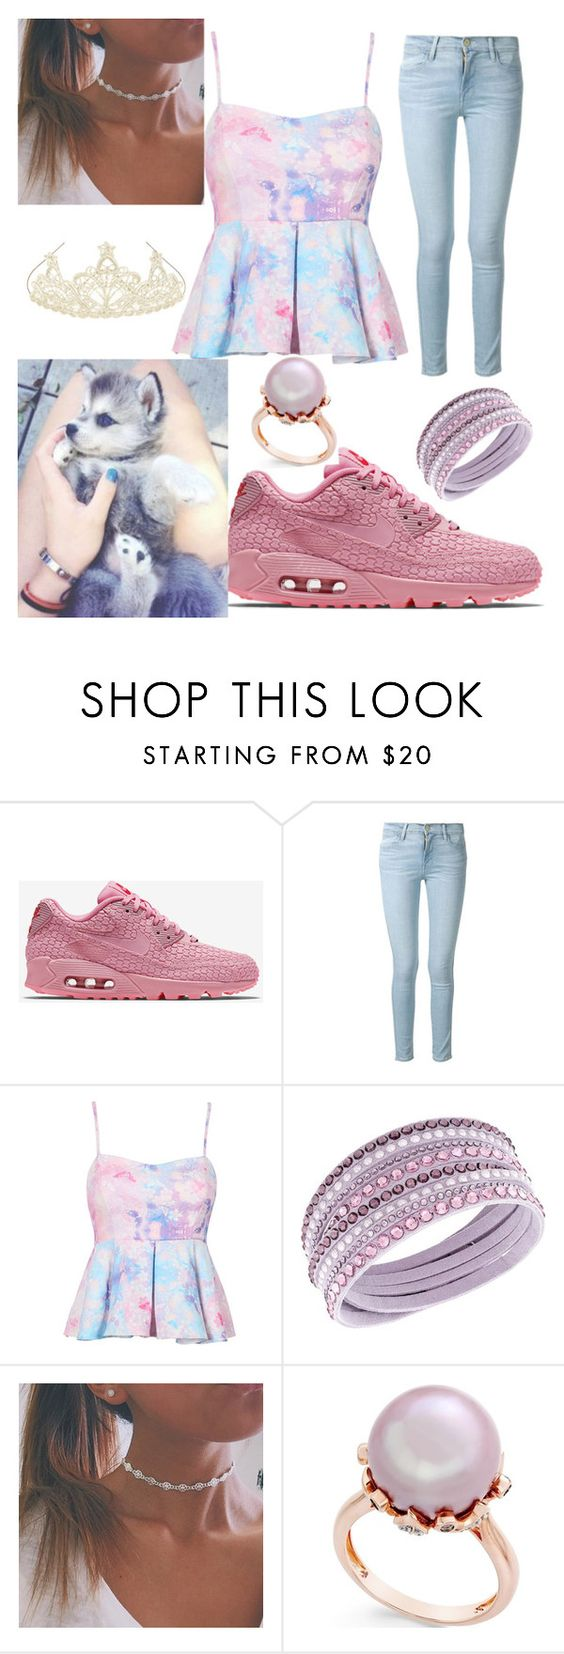 """Getting a puppy"" by bobglitter ❤ liked on Polyvore featuring NIKE, Frame Denim and Monsoon"